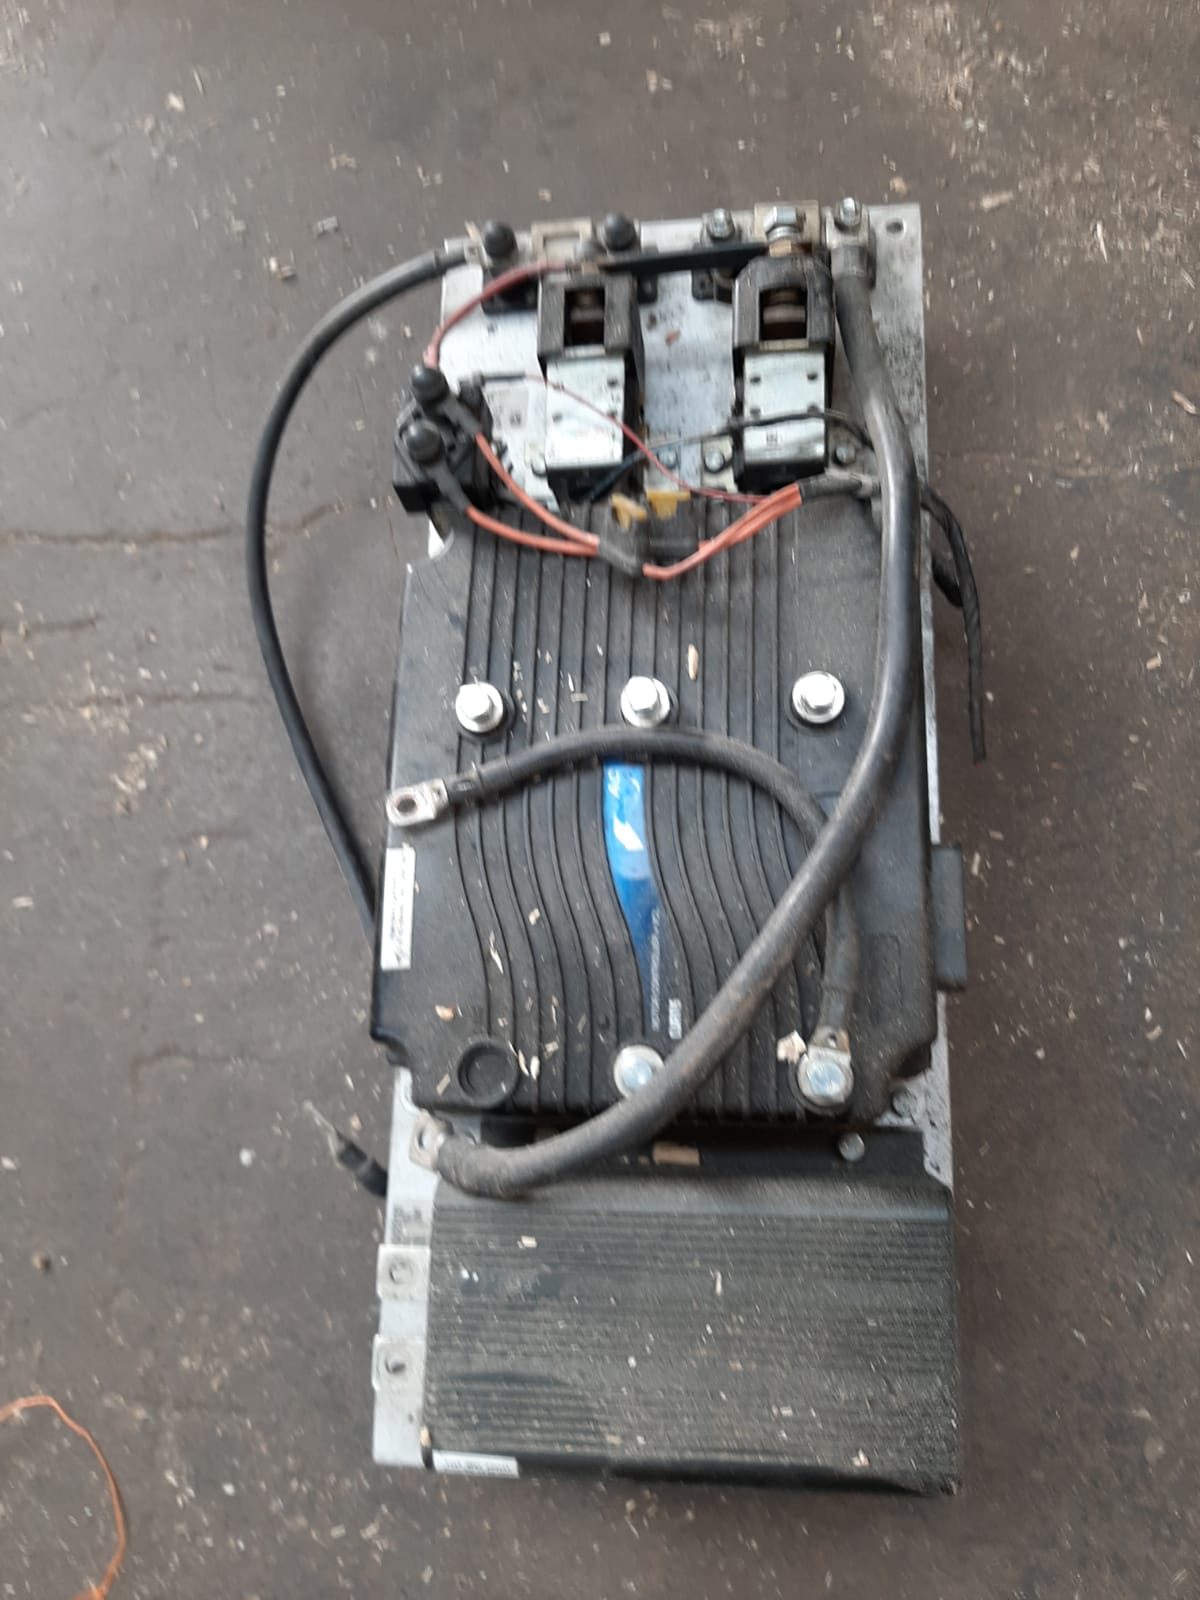 AISLE MASTER WH20E 2014 ELECTRIC FORK TRUCK POWER BOARD CURTIS BOARD WITH INVERTER *NO VAT*